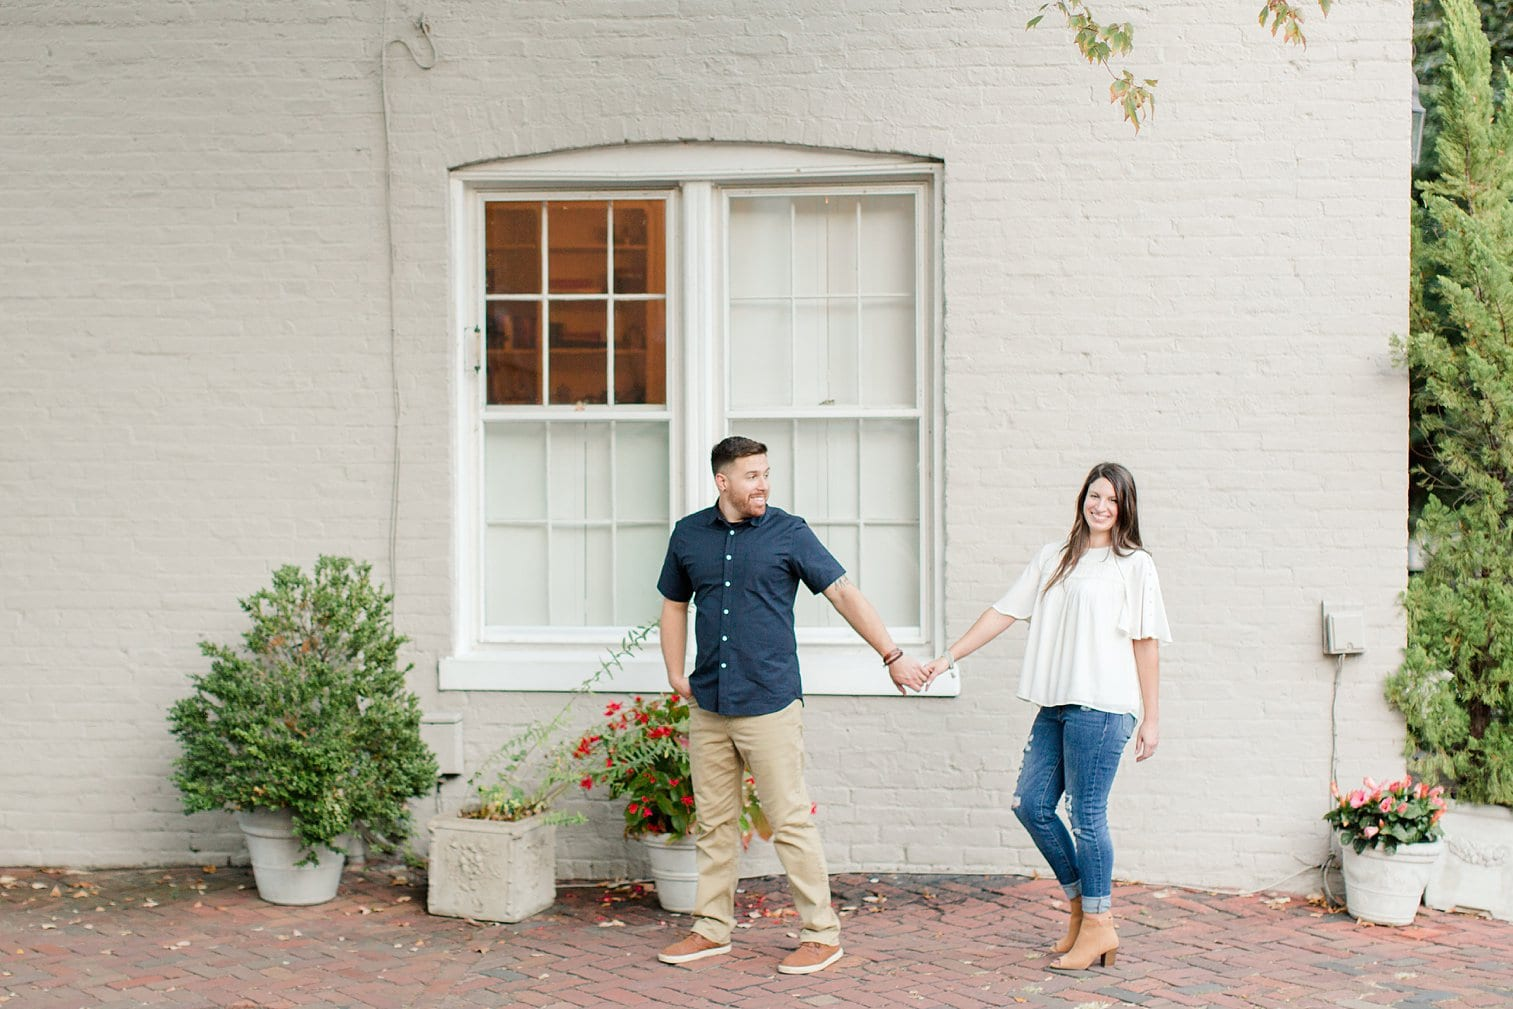 Fall Old Town Alexandria Engagement Photos Megan Kelsey Photography Virginia Wed-0020.jpg